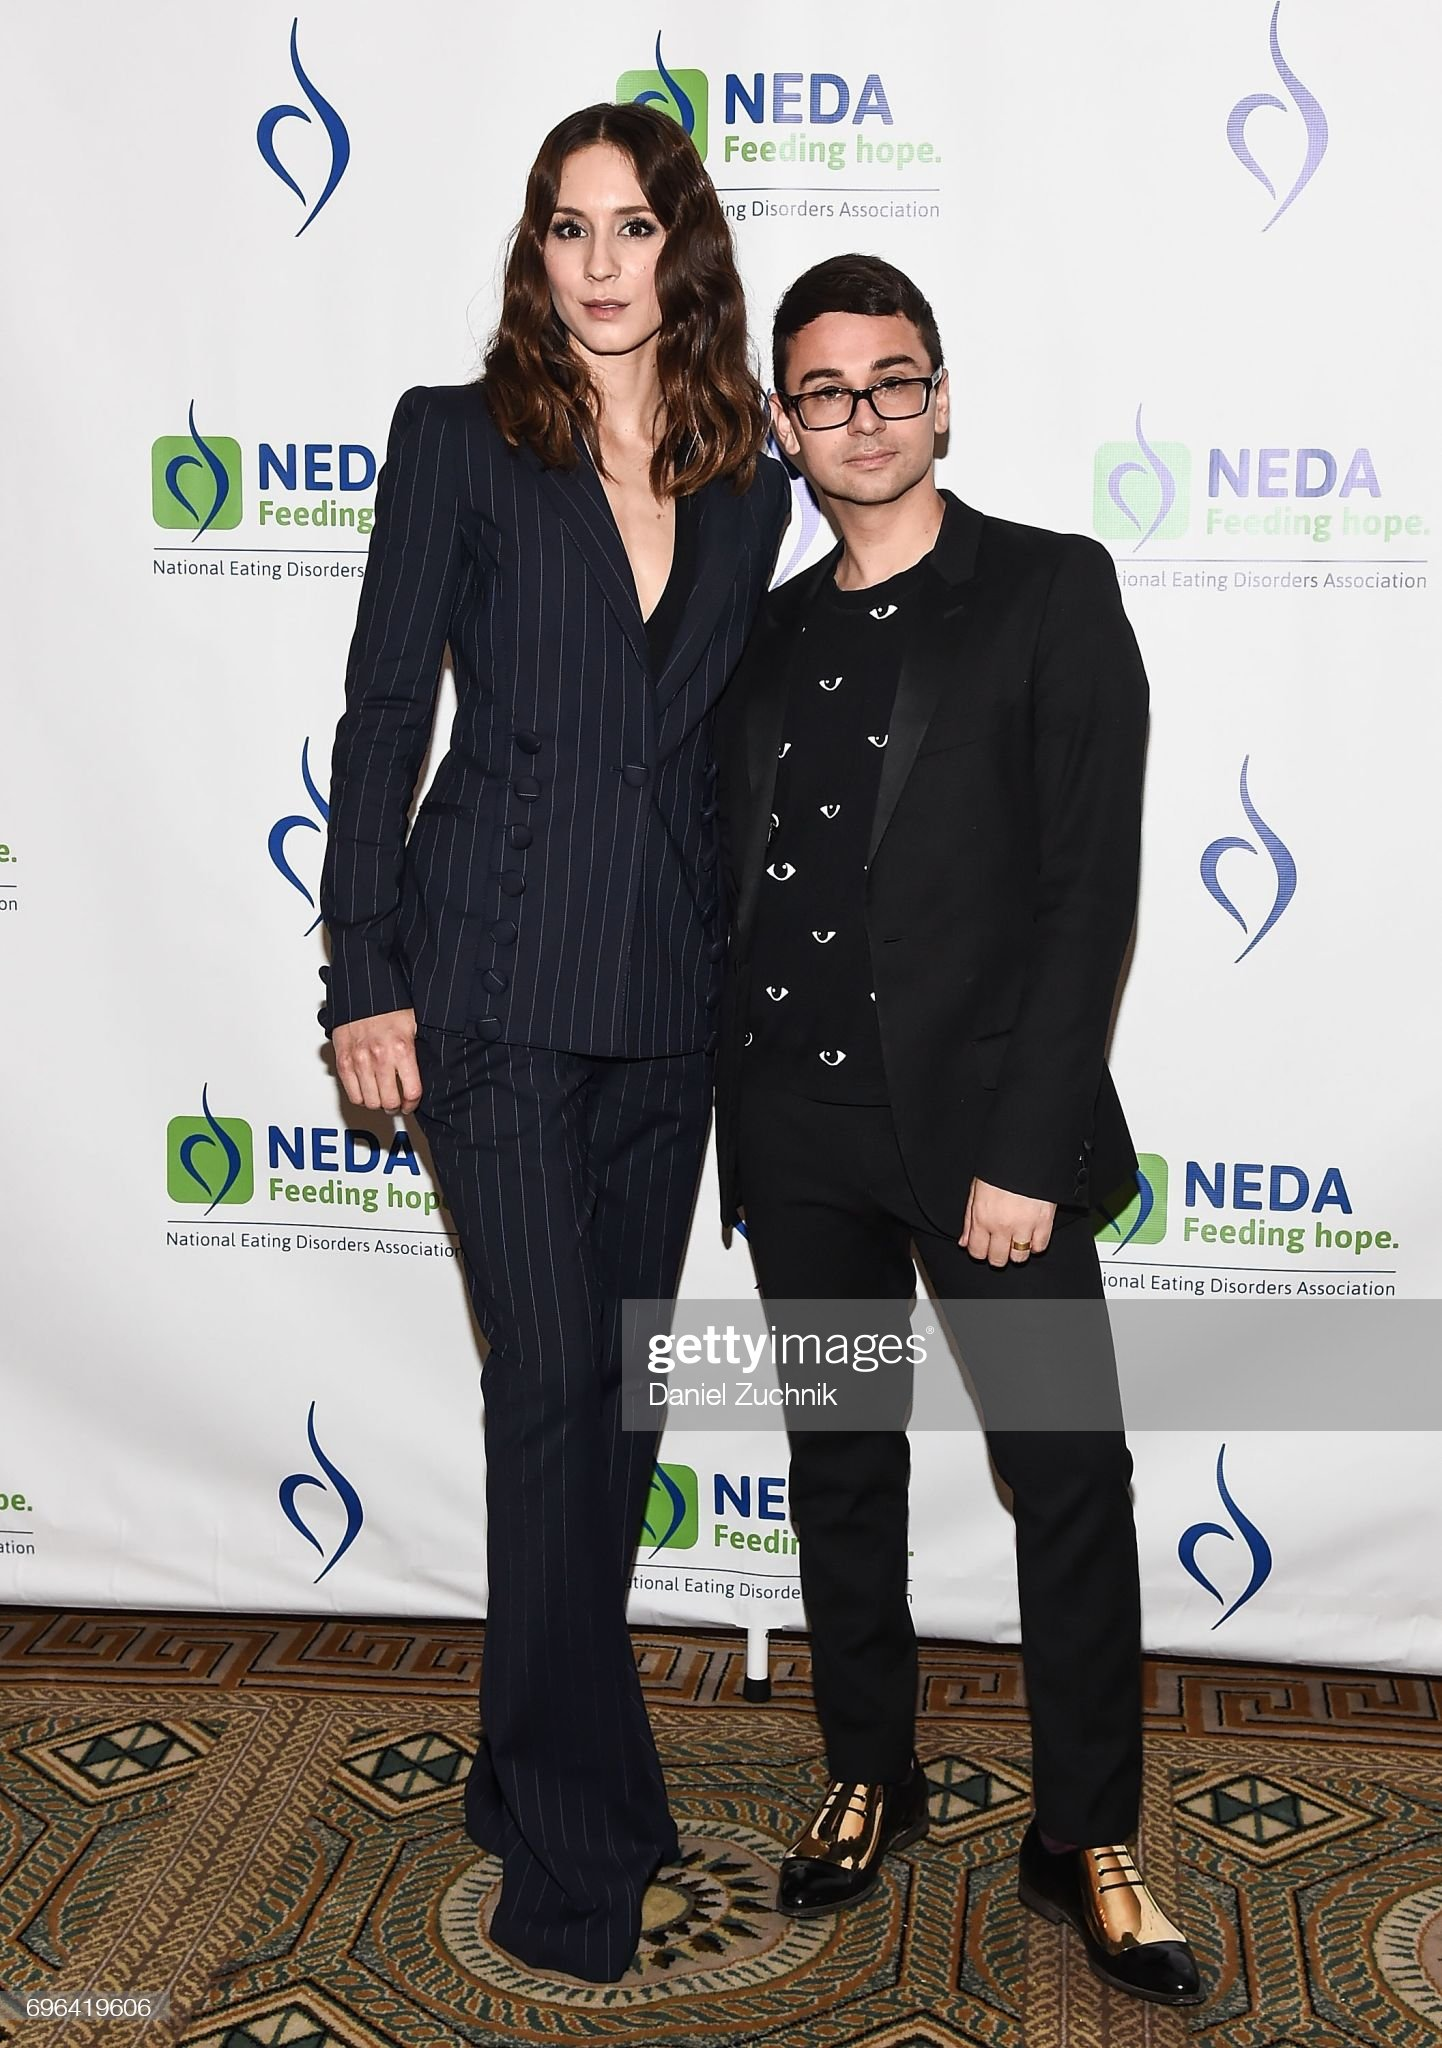 ¿Cuánto mide Troian Bellisario? - Real height Troian-bellisario-and-christian-siriano-attend-the-15th-annual-gala-picture-id696419606?s=2048x2048